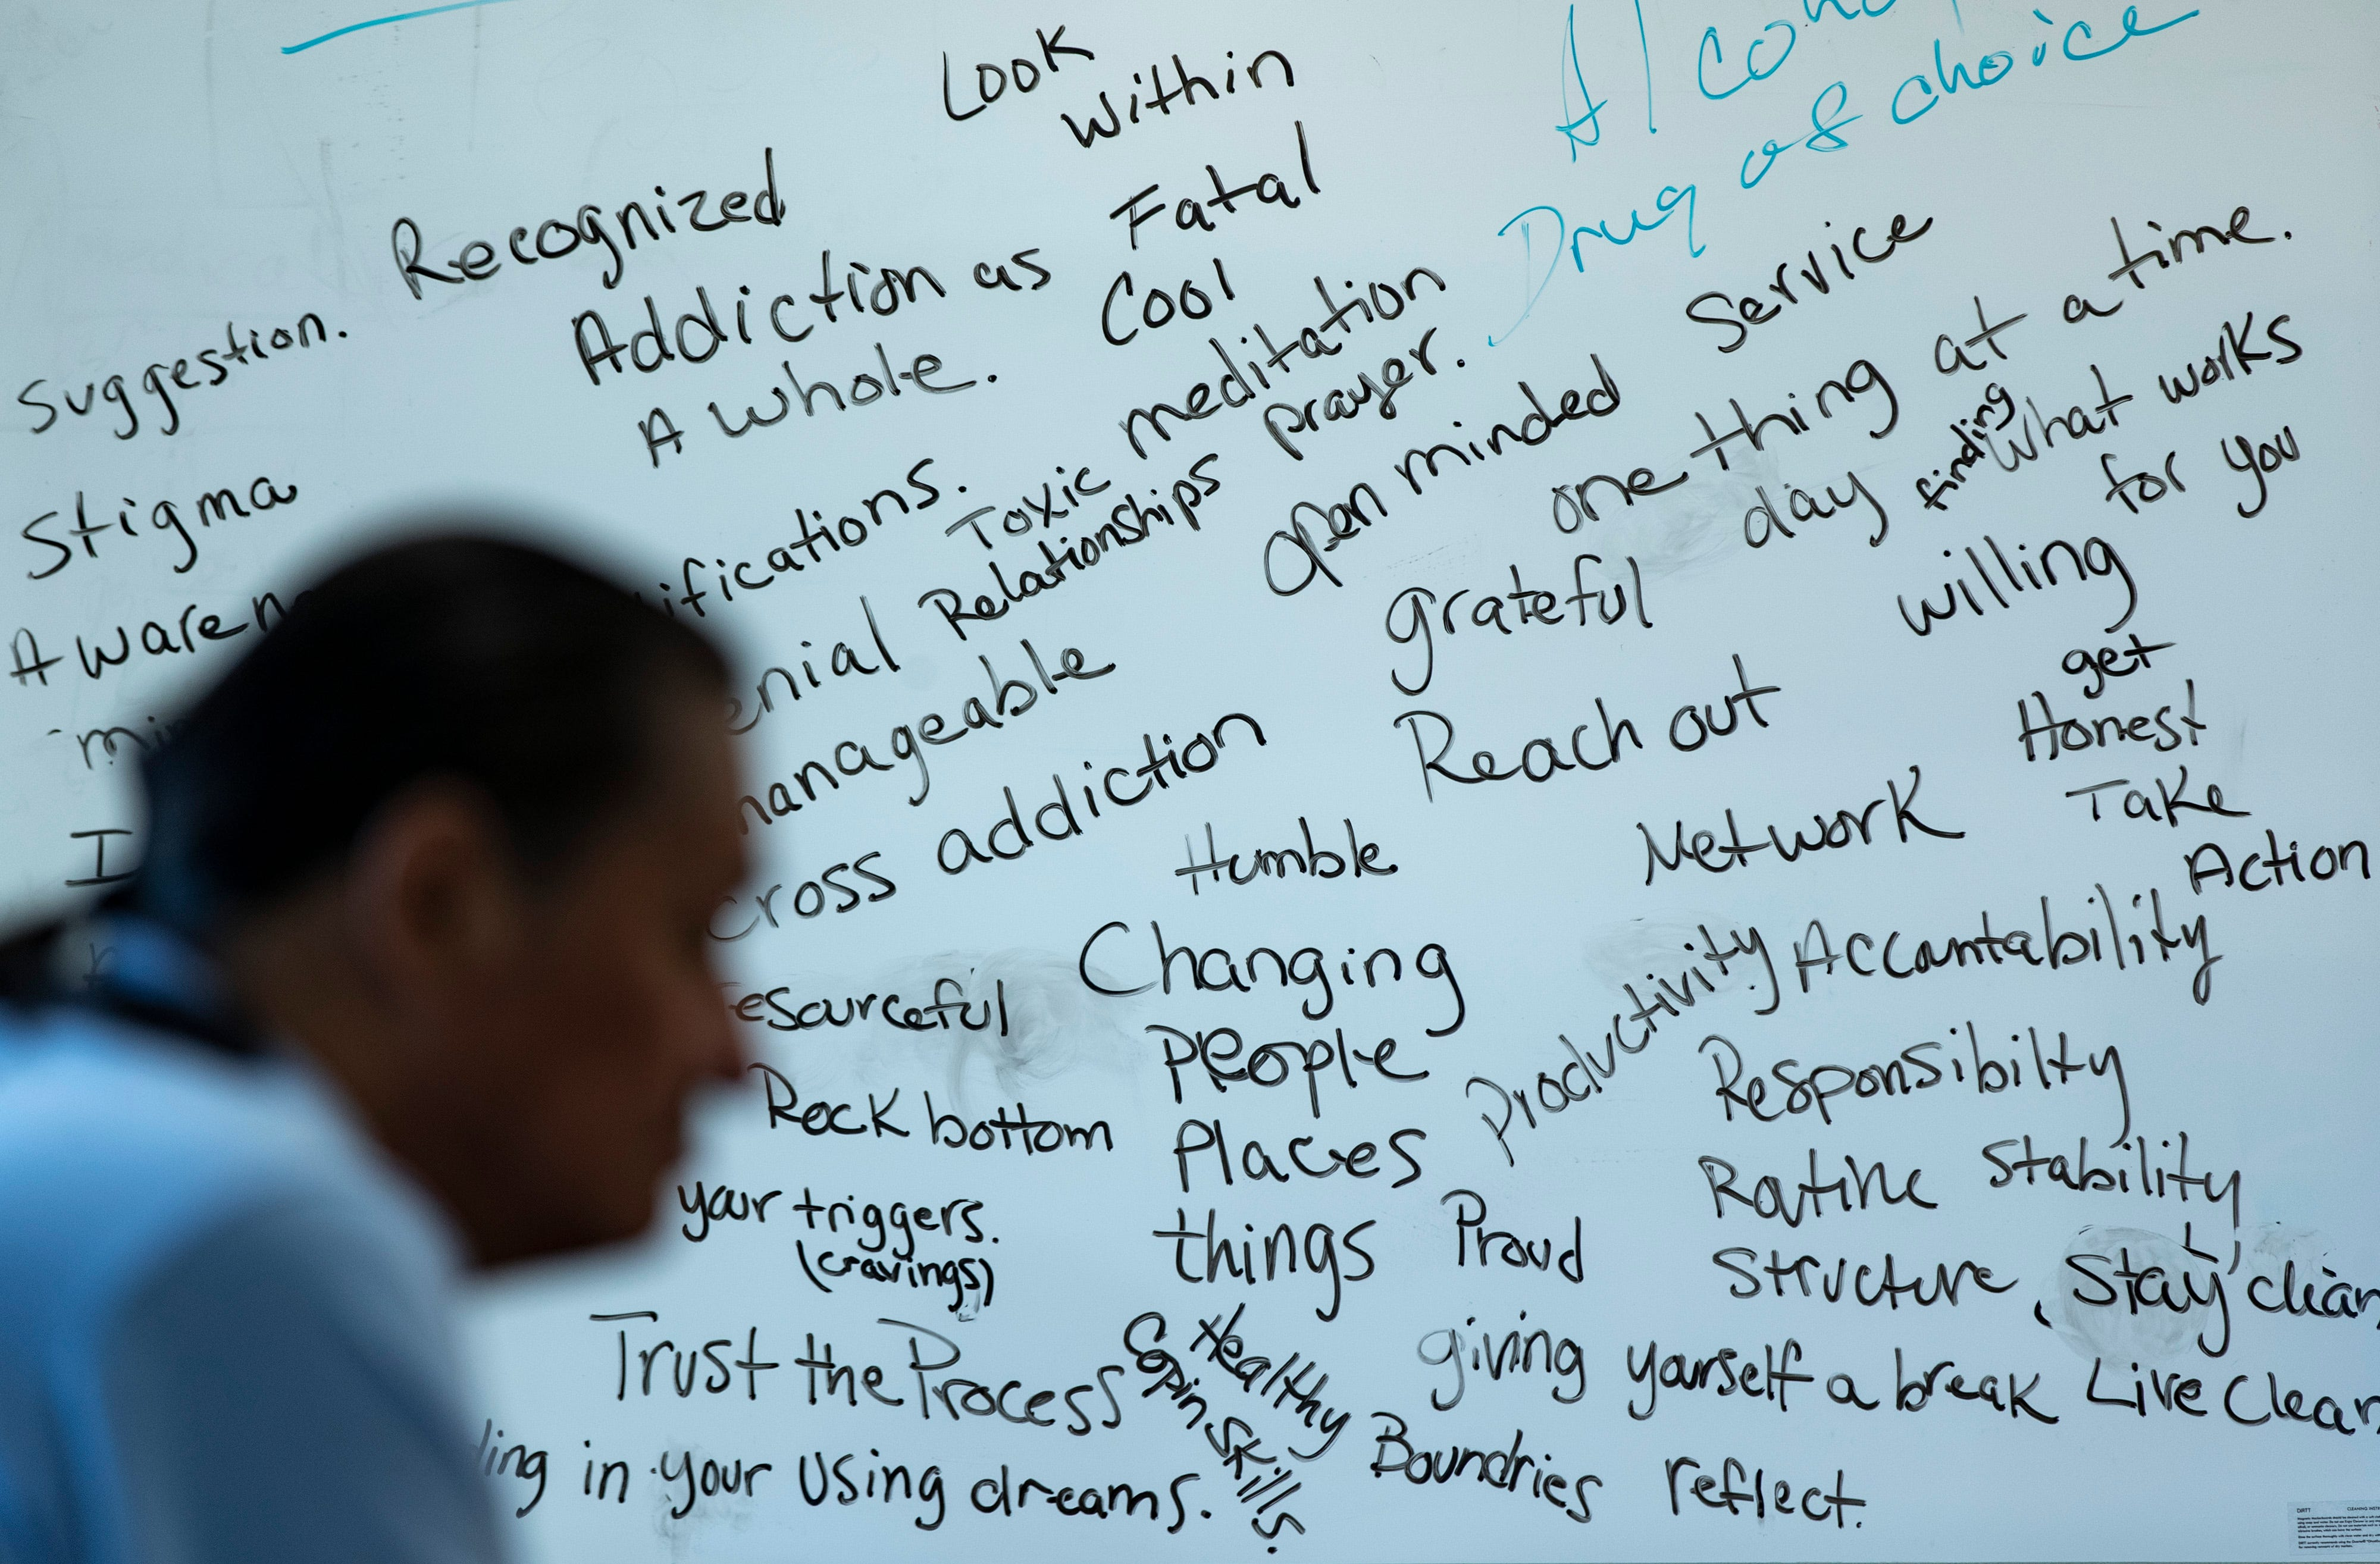 A group session participant looks on in front of a marker board covered in topics and phrases from group sessions at the Good Road Recovery Center in Bismarck, North Dakota. June 21, 2021